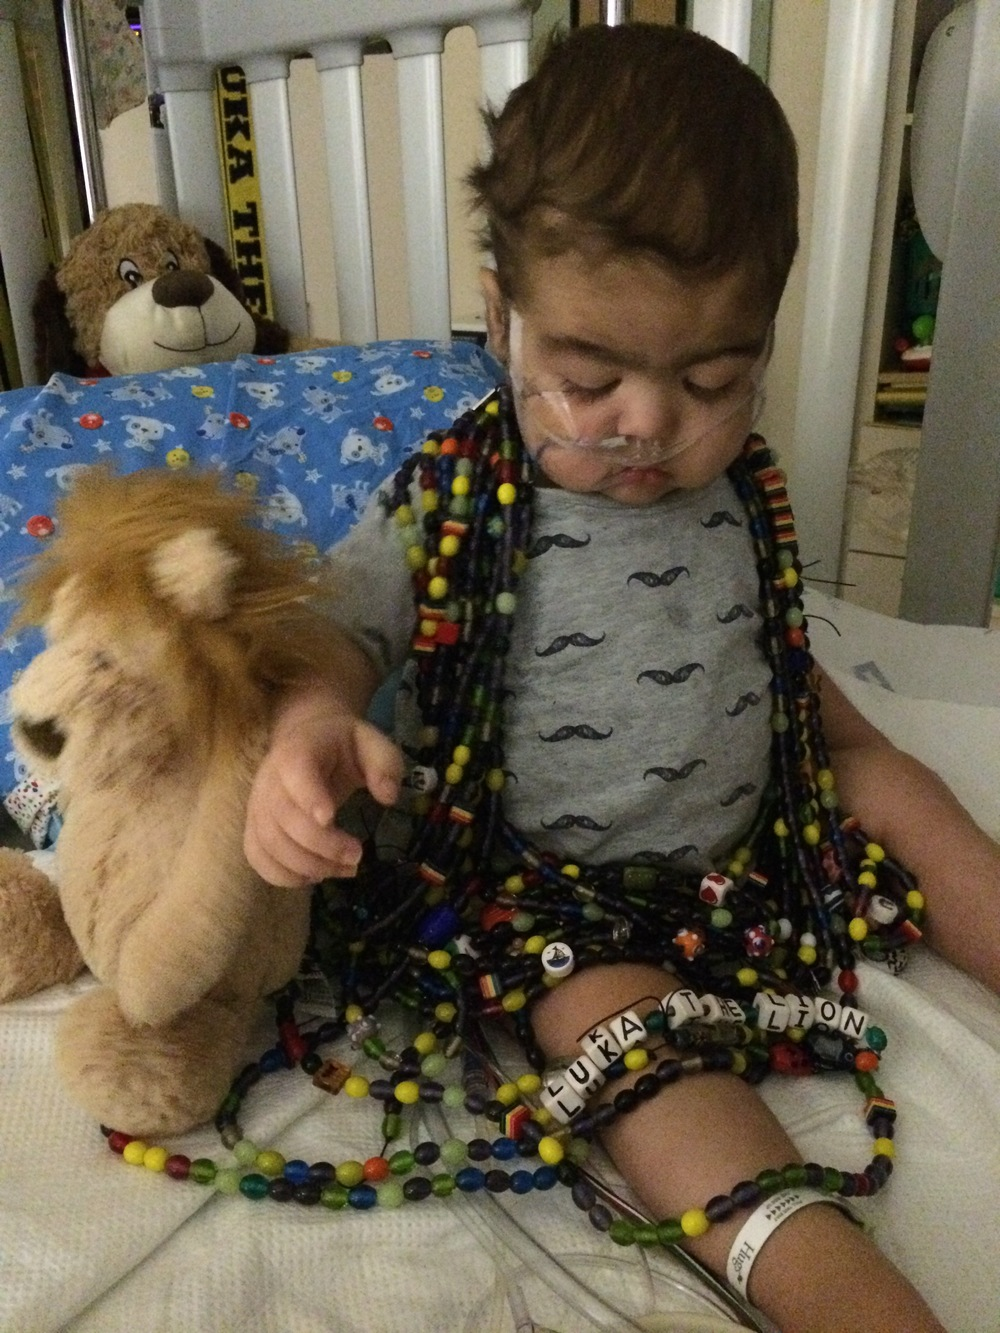 At nearly 21 months of life in November 2015, our brave Luka The Lion earned over 48 feet of beads for countless procedures and treatment due to a rare disease that is thought to be unique to him.